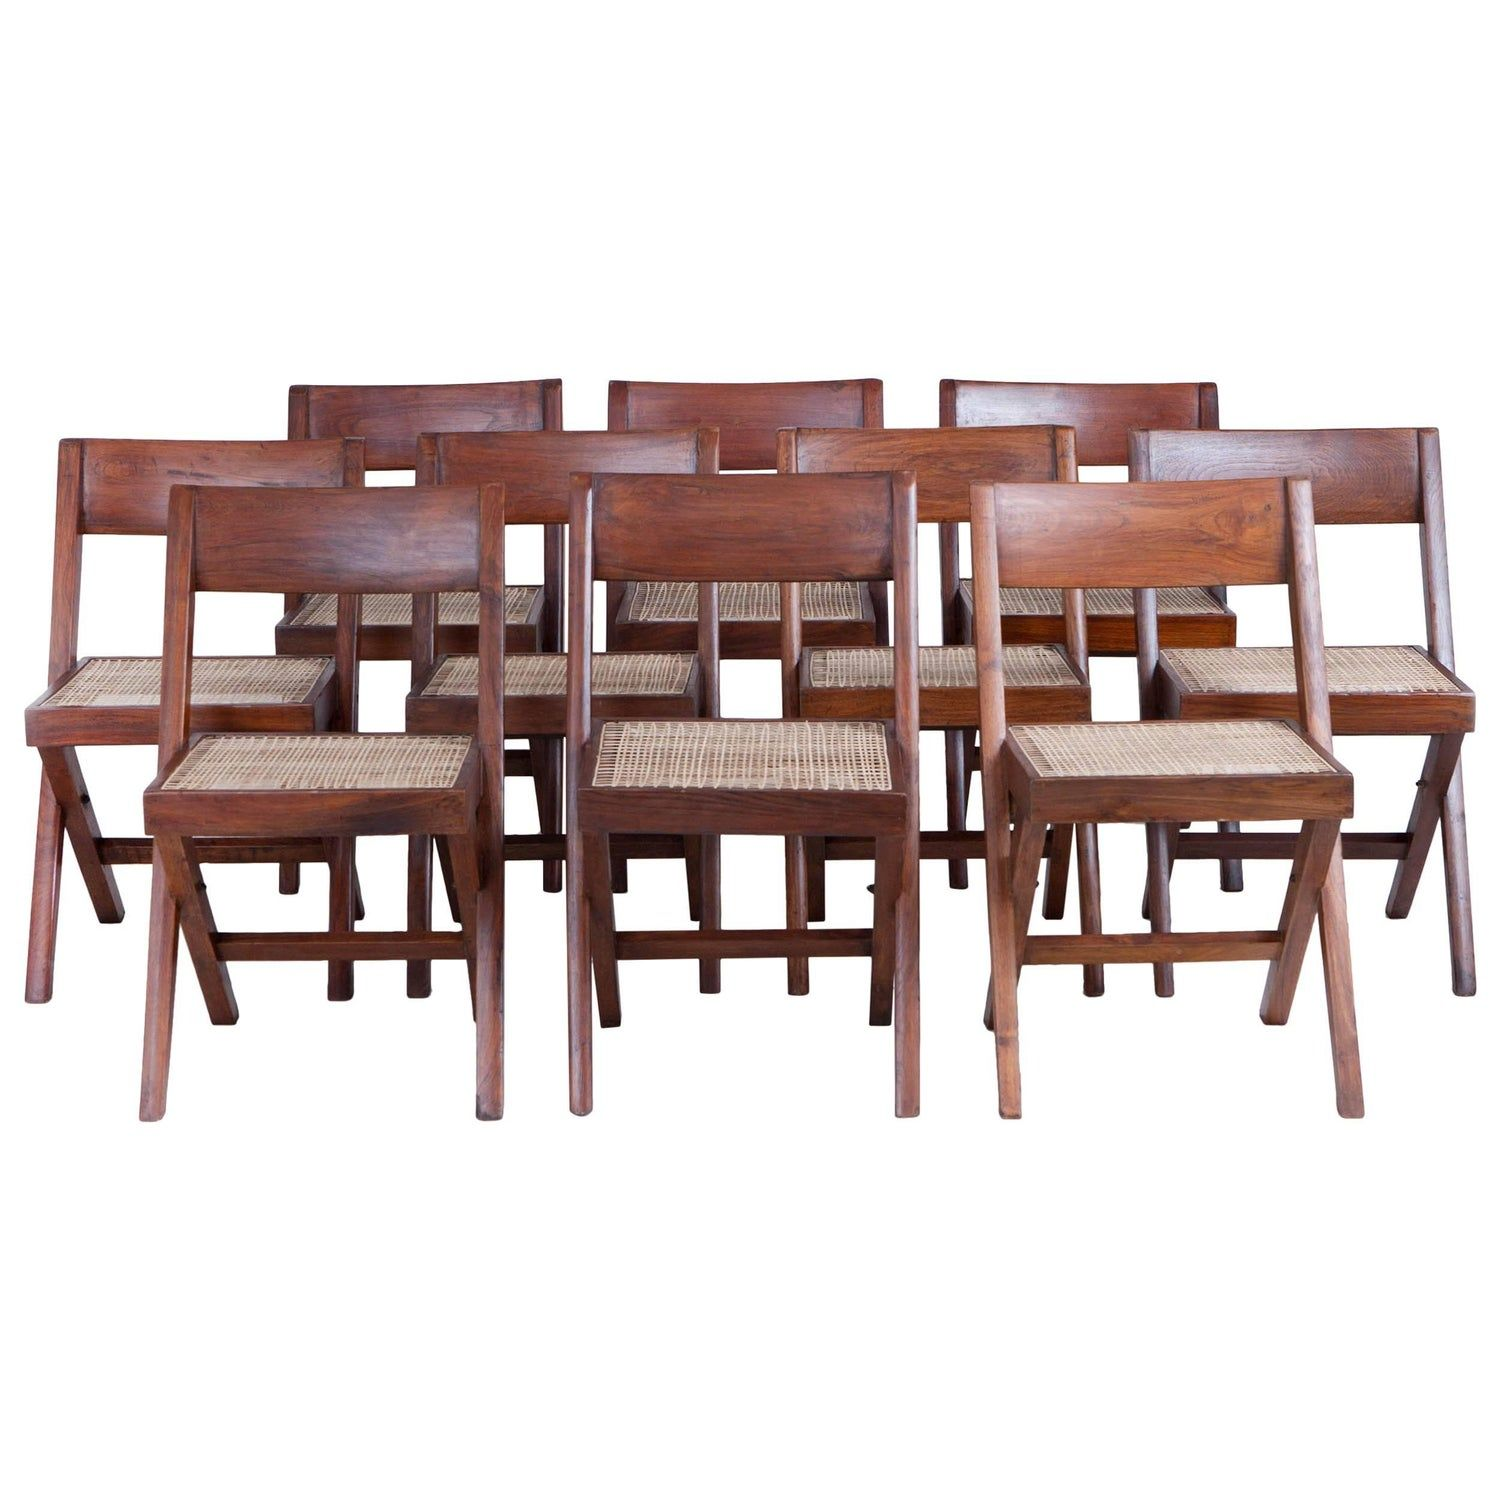 Pierre Jeanneret Library Dining Chairs 10 Available In 2020 Dining Chairs Dining Chairs For Sale Chair